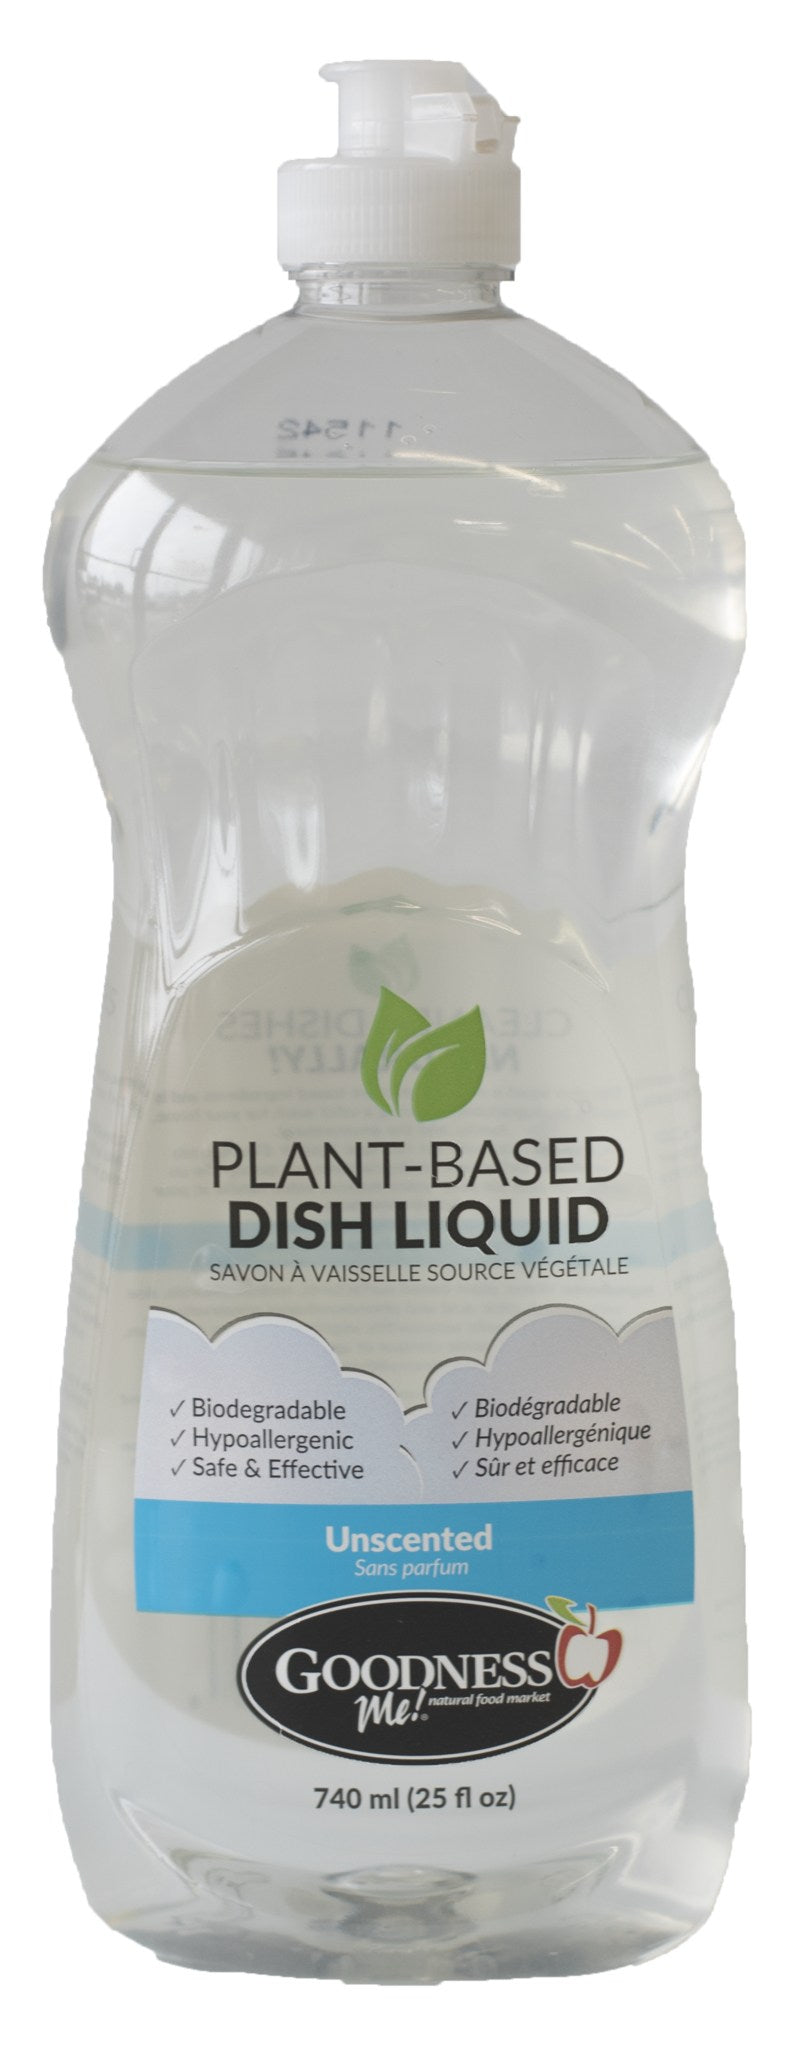 Healthy Lifestyles - Goodness Me! - Dish Soap Unscented - 740ml